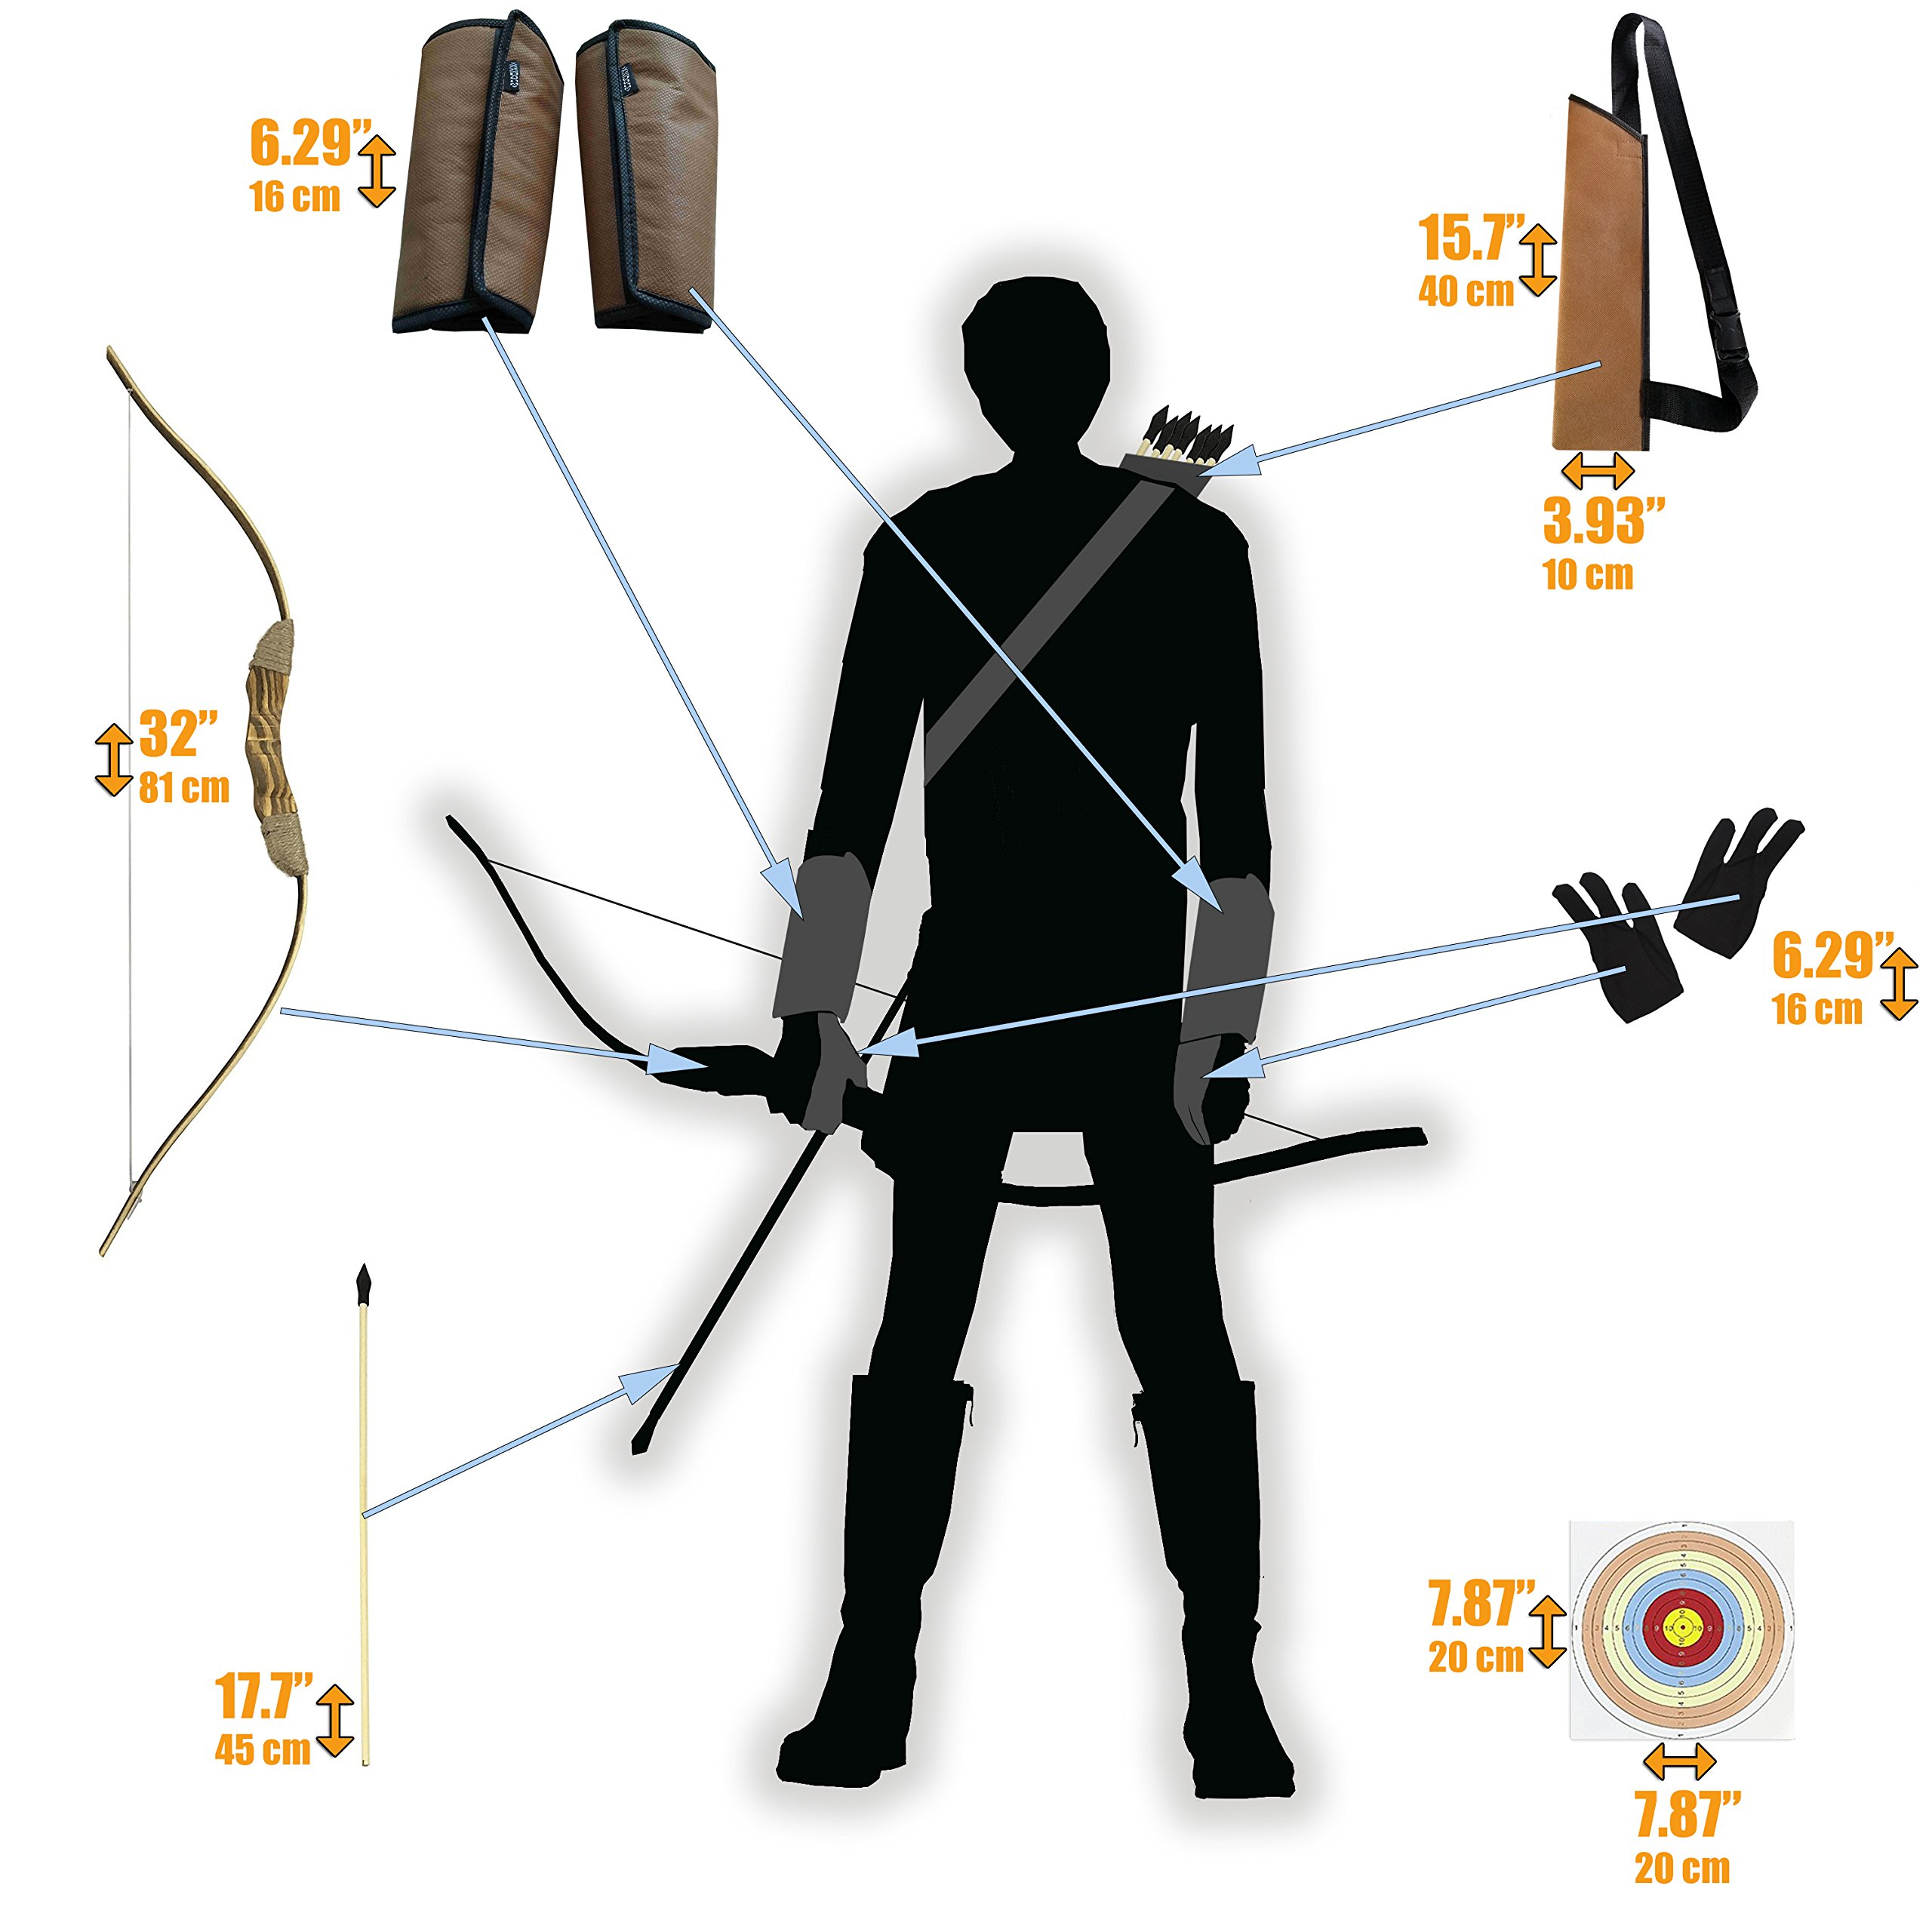 Knidose Beginners Bow Arrow Kids | 36 Pieces Safe Archery Set Outdoor Indoor Fun, Handcrafted Wooden 1 Bow, 15 Arrows, 15 Target Sheets, 1 Quiver, 2 Arm 2 Finger Guards Shooting Toy by Knidose (Image #3)